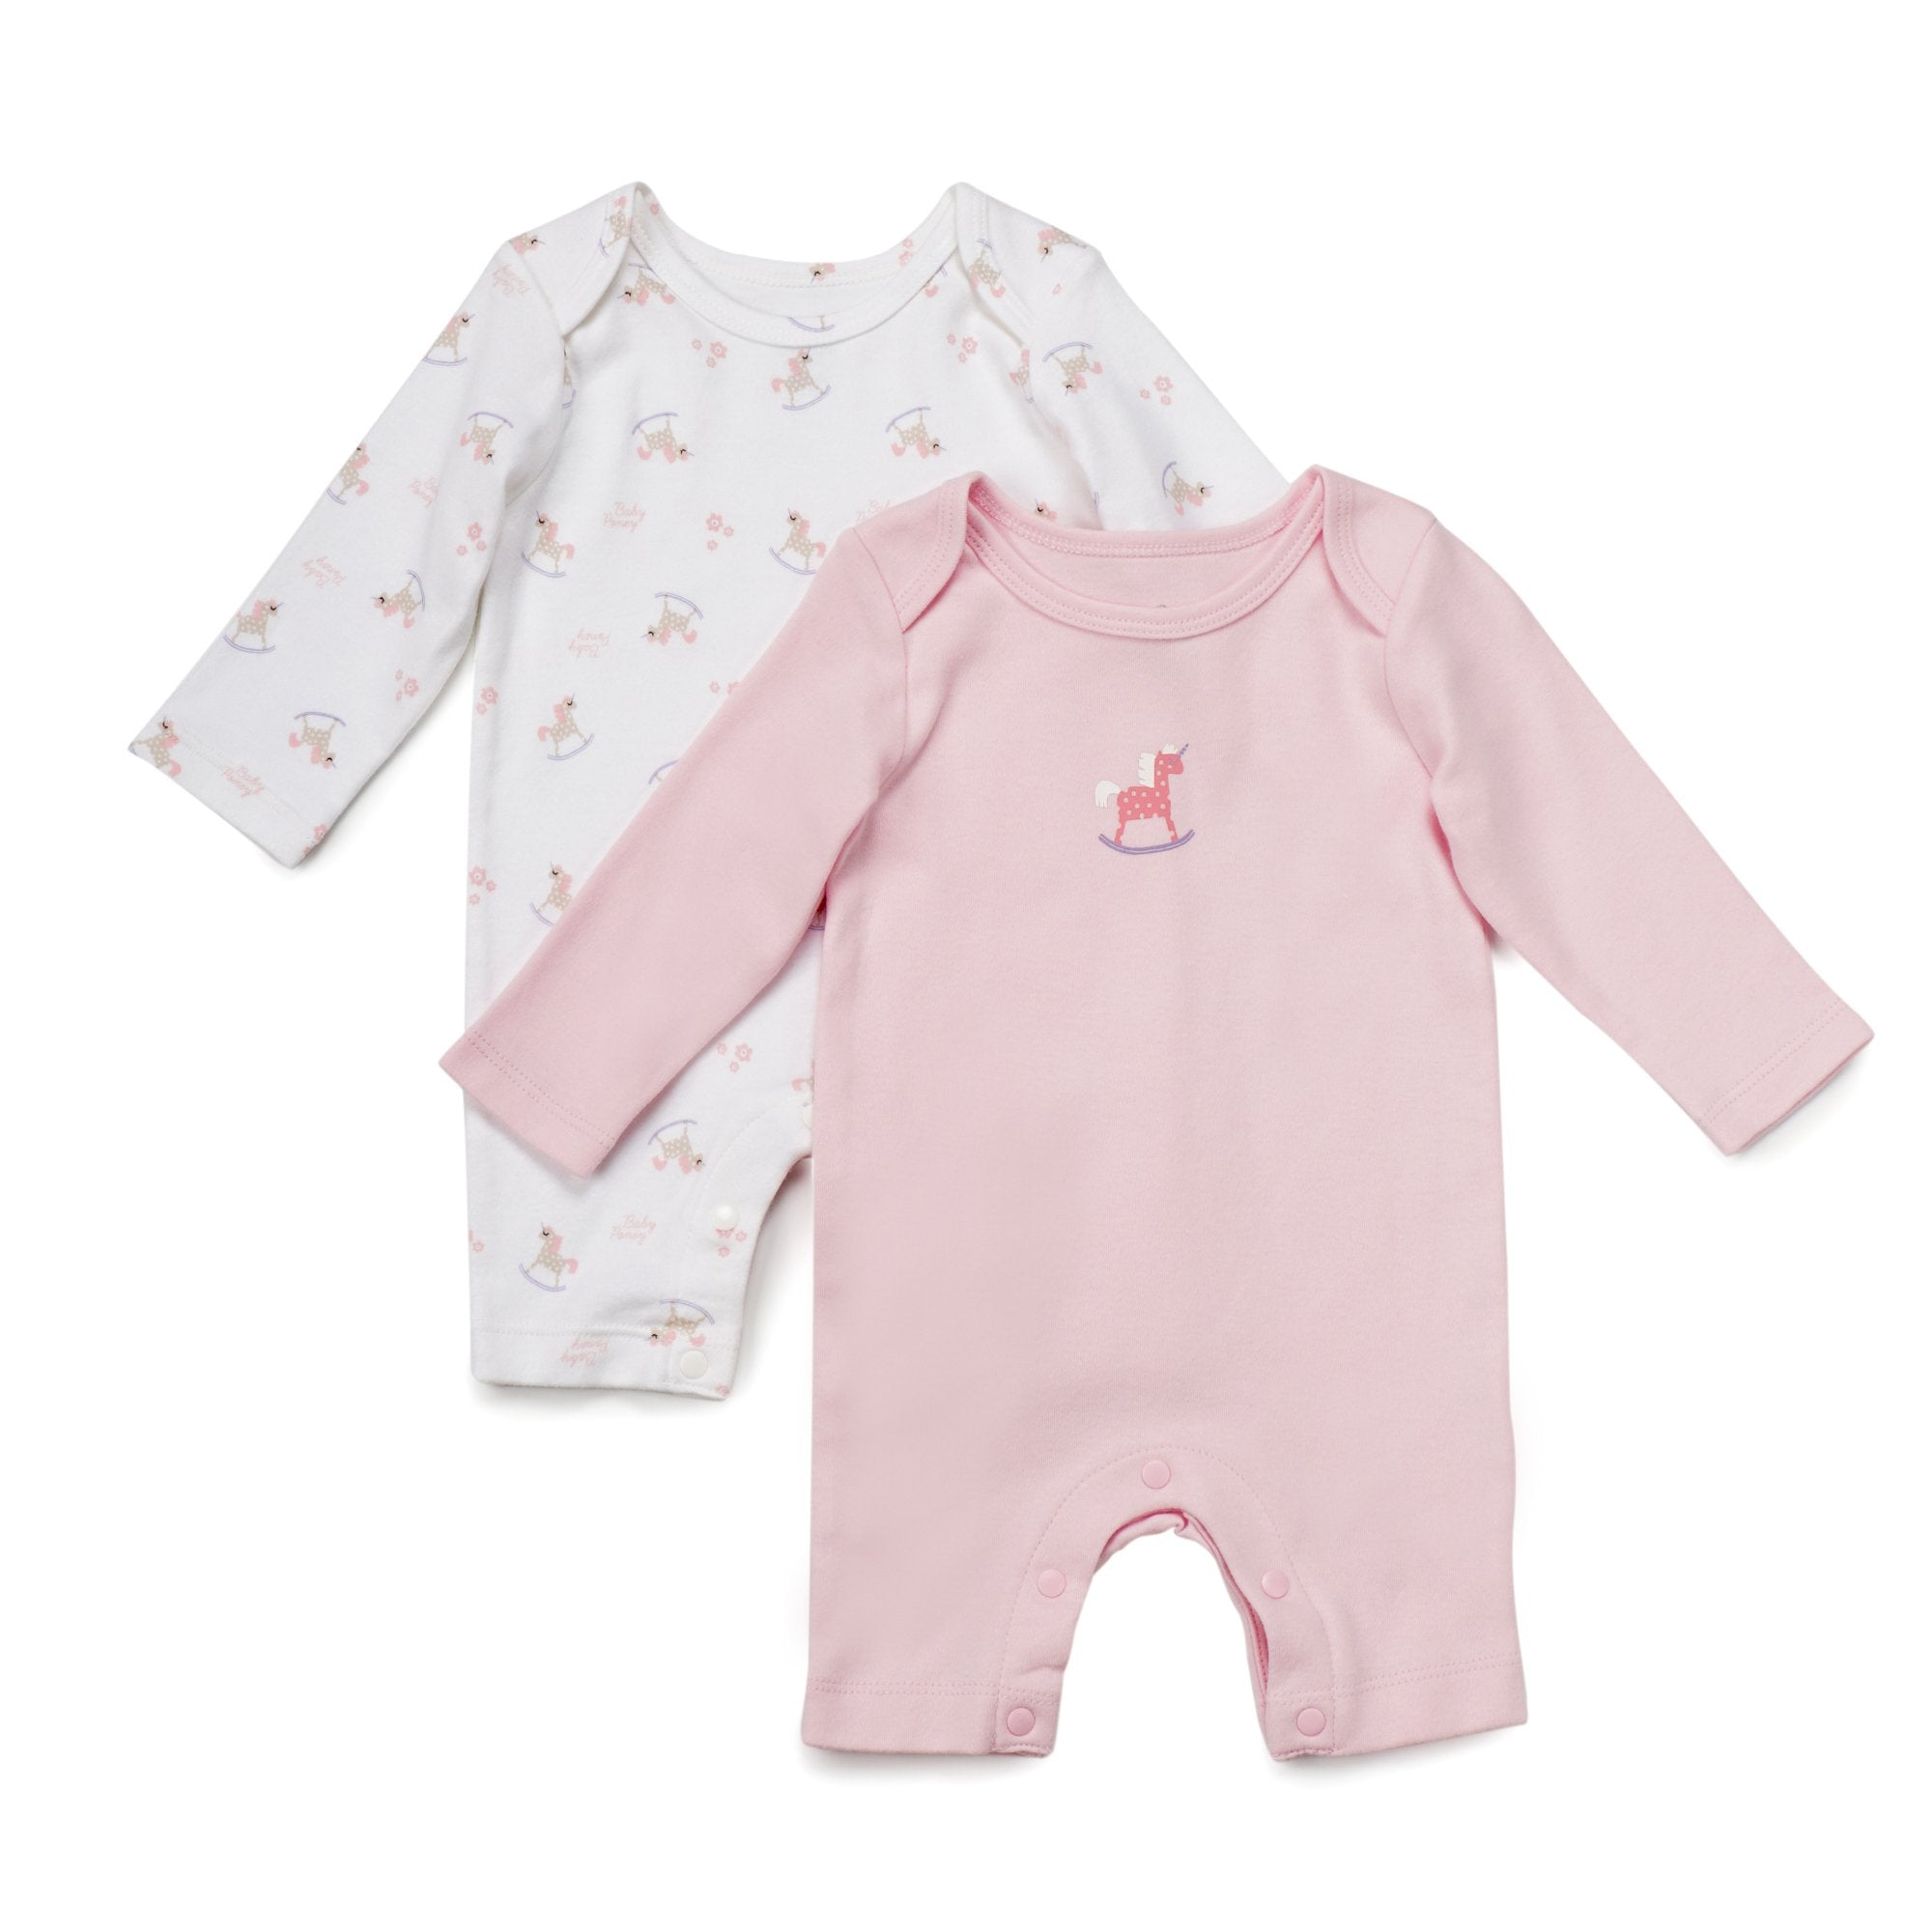 Poney Essential Girls 2-Pack Sleepsuits 80051